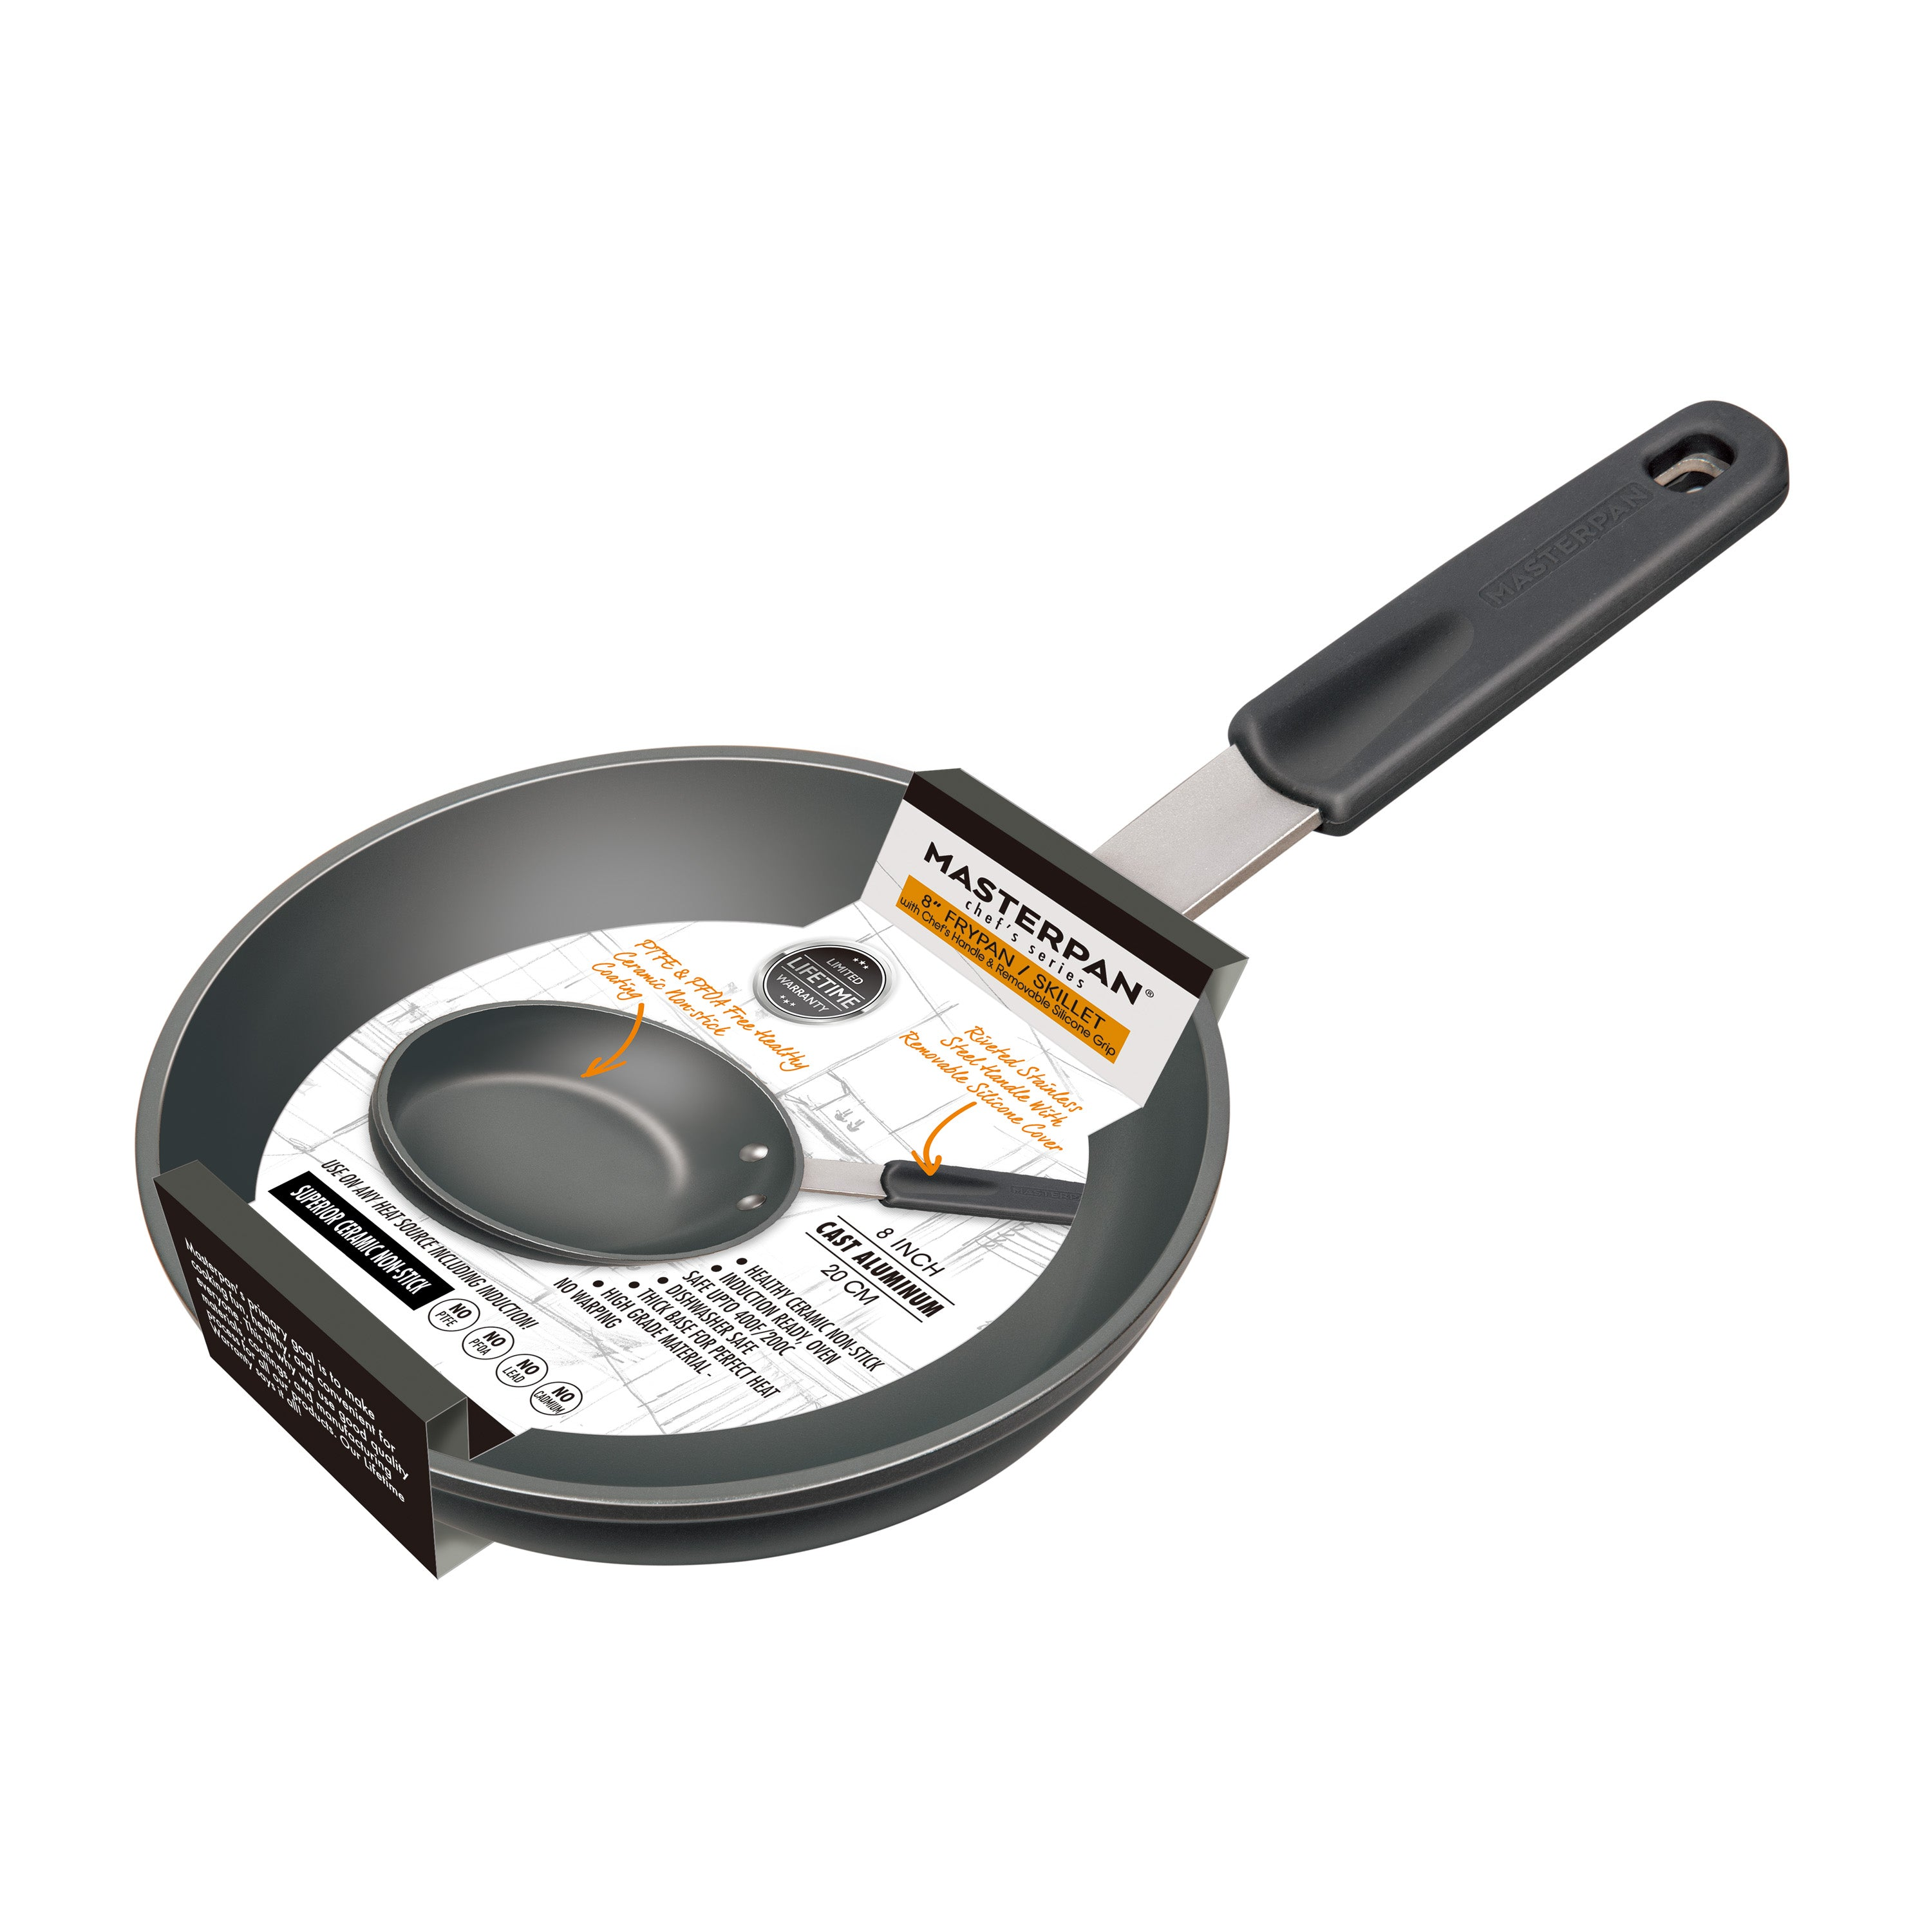 "FRY PAN & SKILLET, HEALTHY CERAMIC NON-STICK ALUMINIUM COOKWARE WITH STAINLESS STEEL CHEF'S HANDLE, 8"" (20cm)"